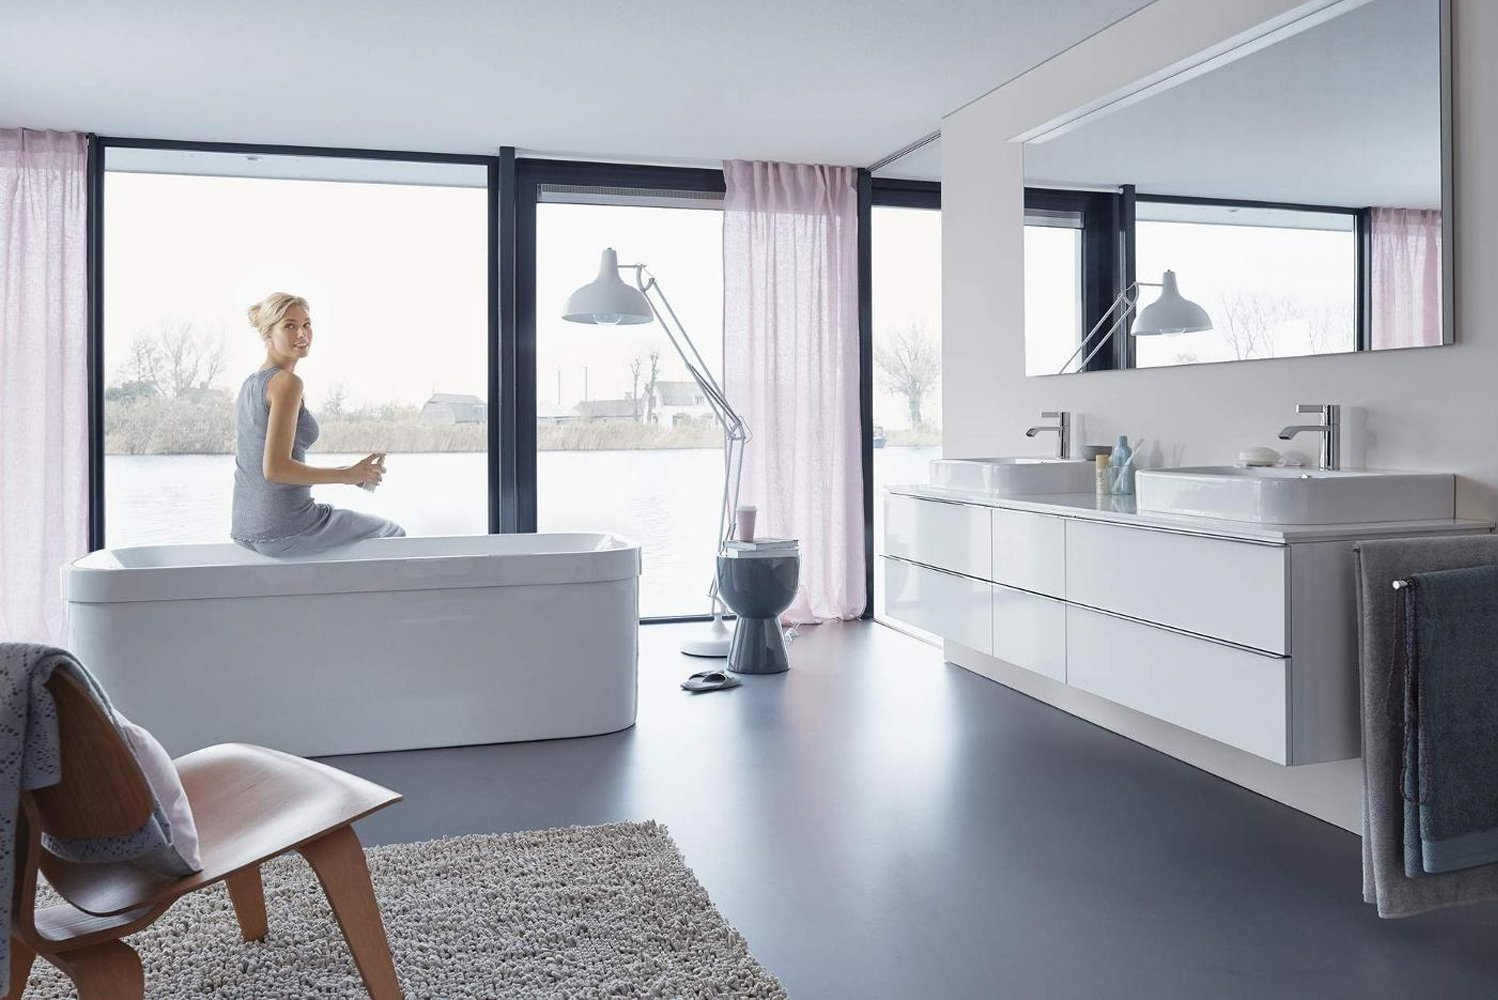 The Happy bathtub by Duravit has built-in and freestanding versions, offering a number of options, including neckrest and two backrest slopes.